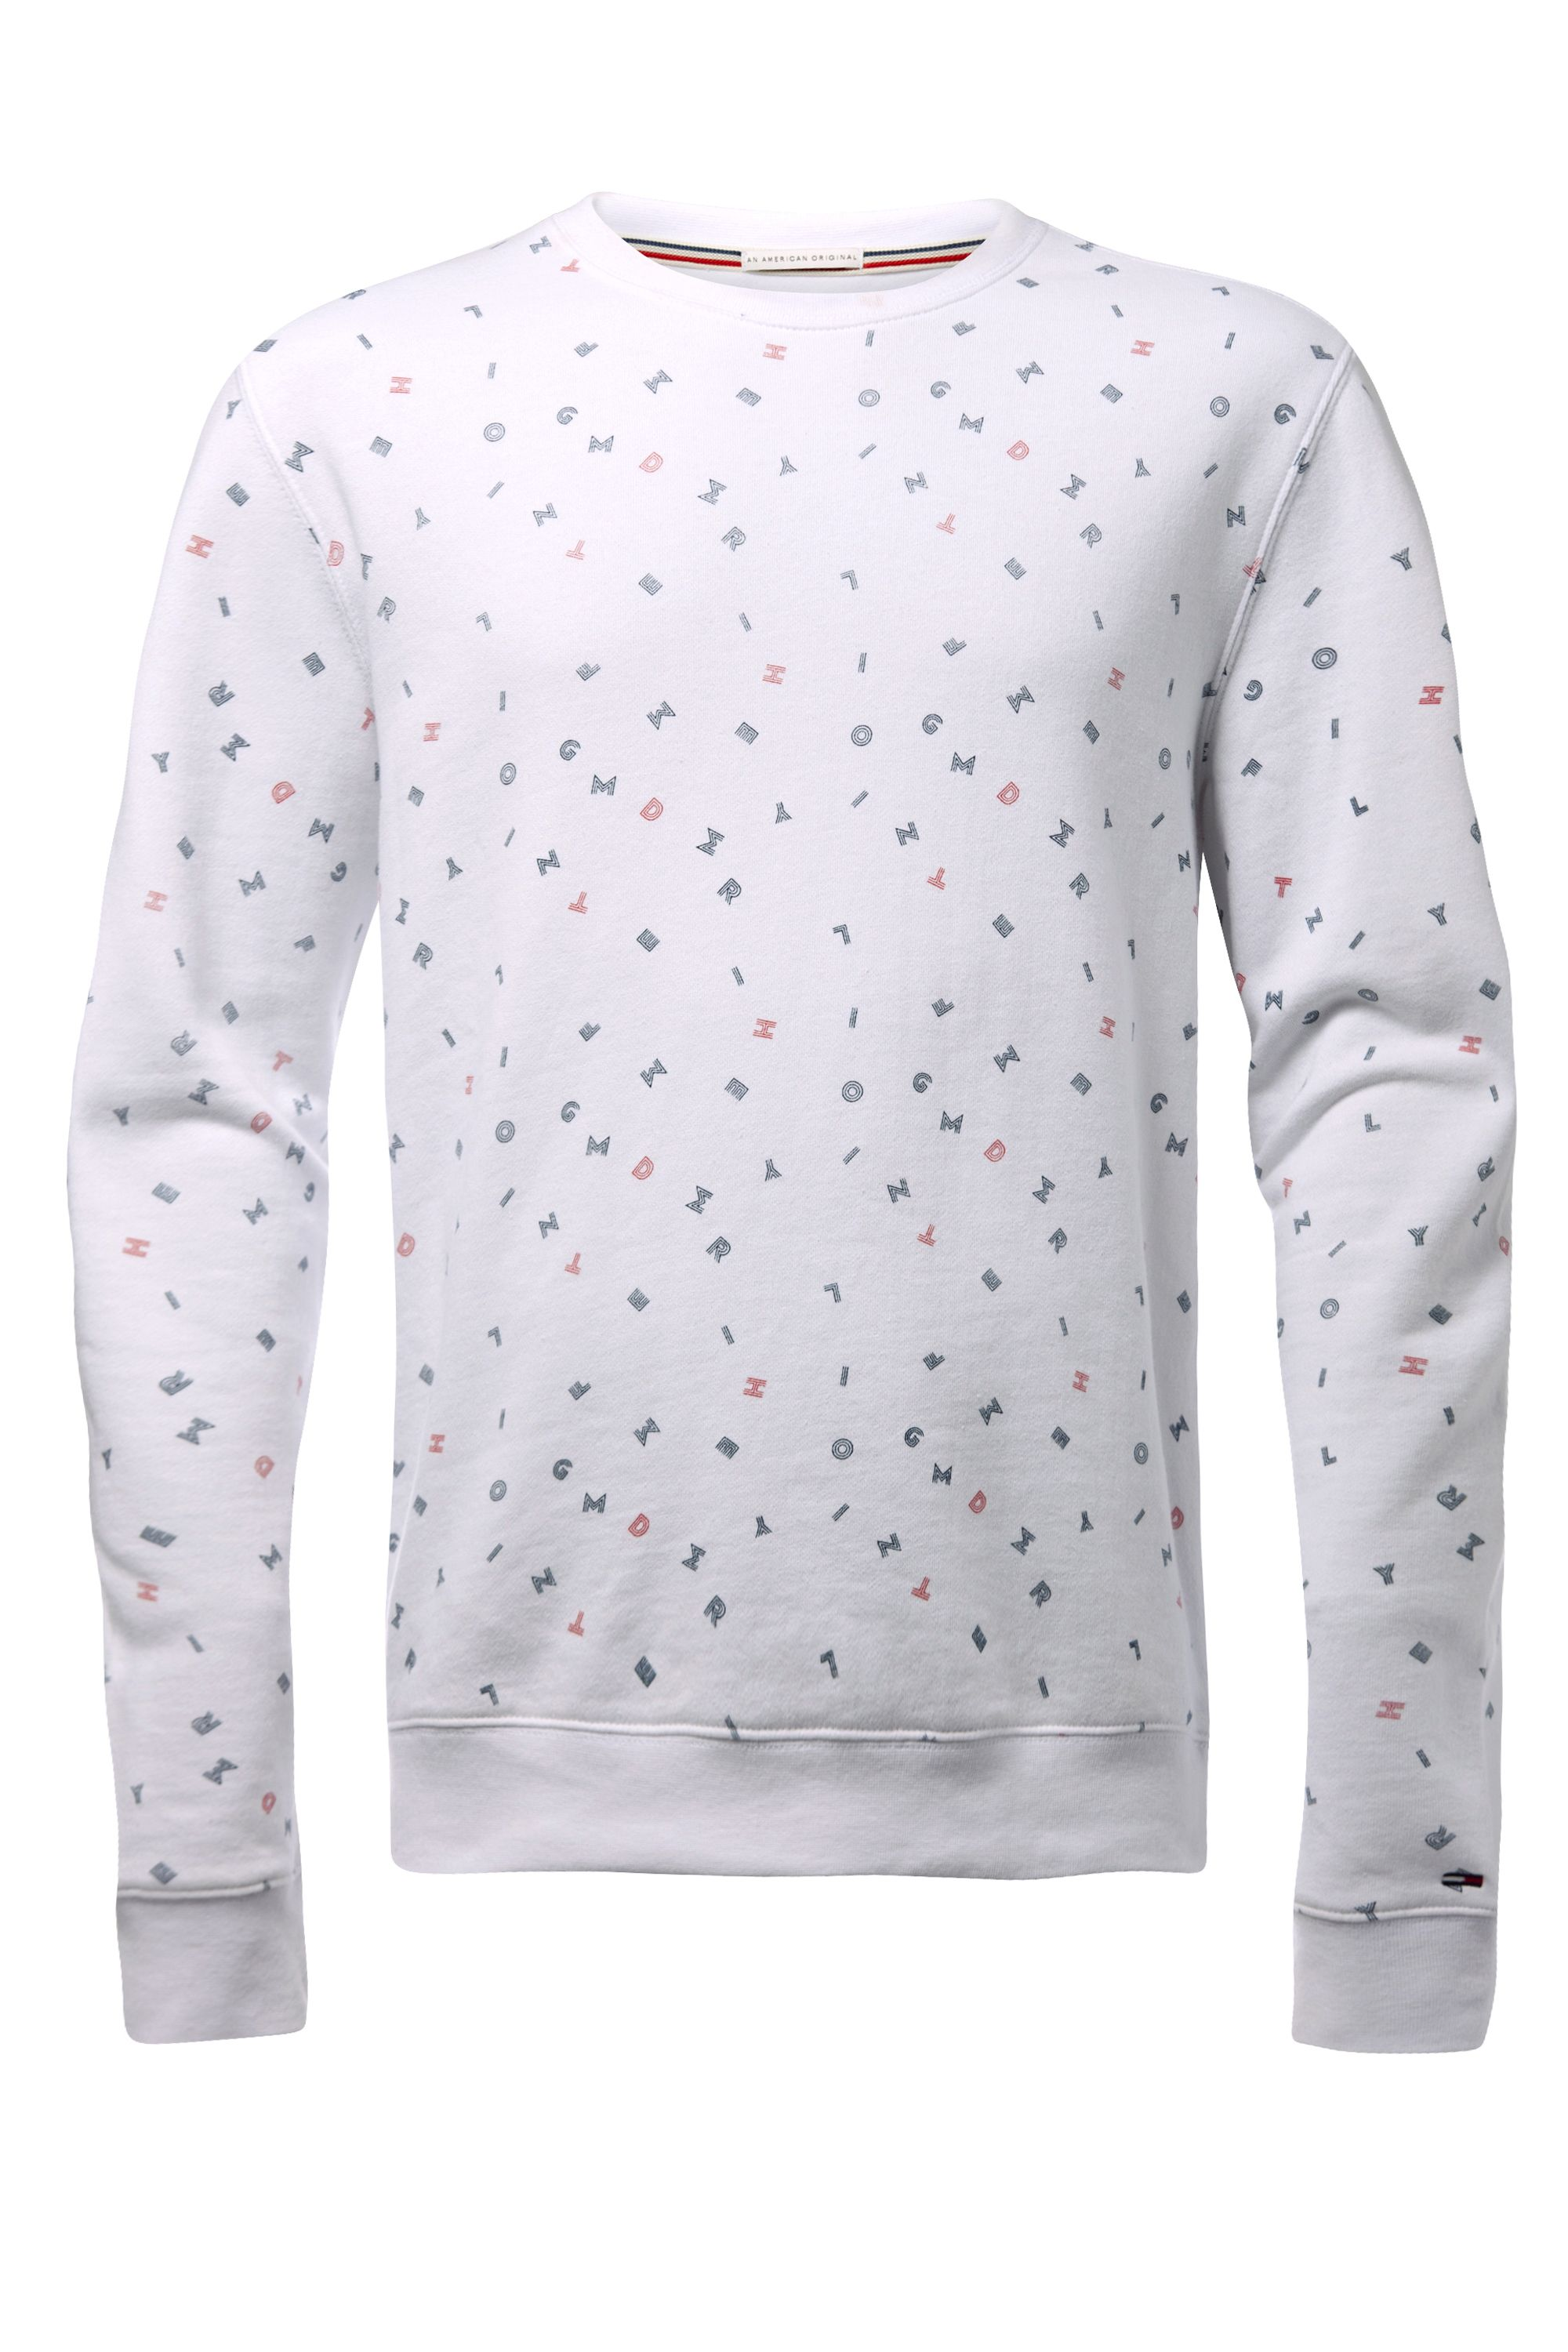 Men's Tommy Hilfiger letter print sweater, White